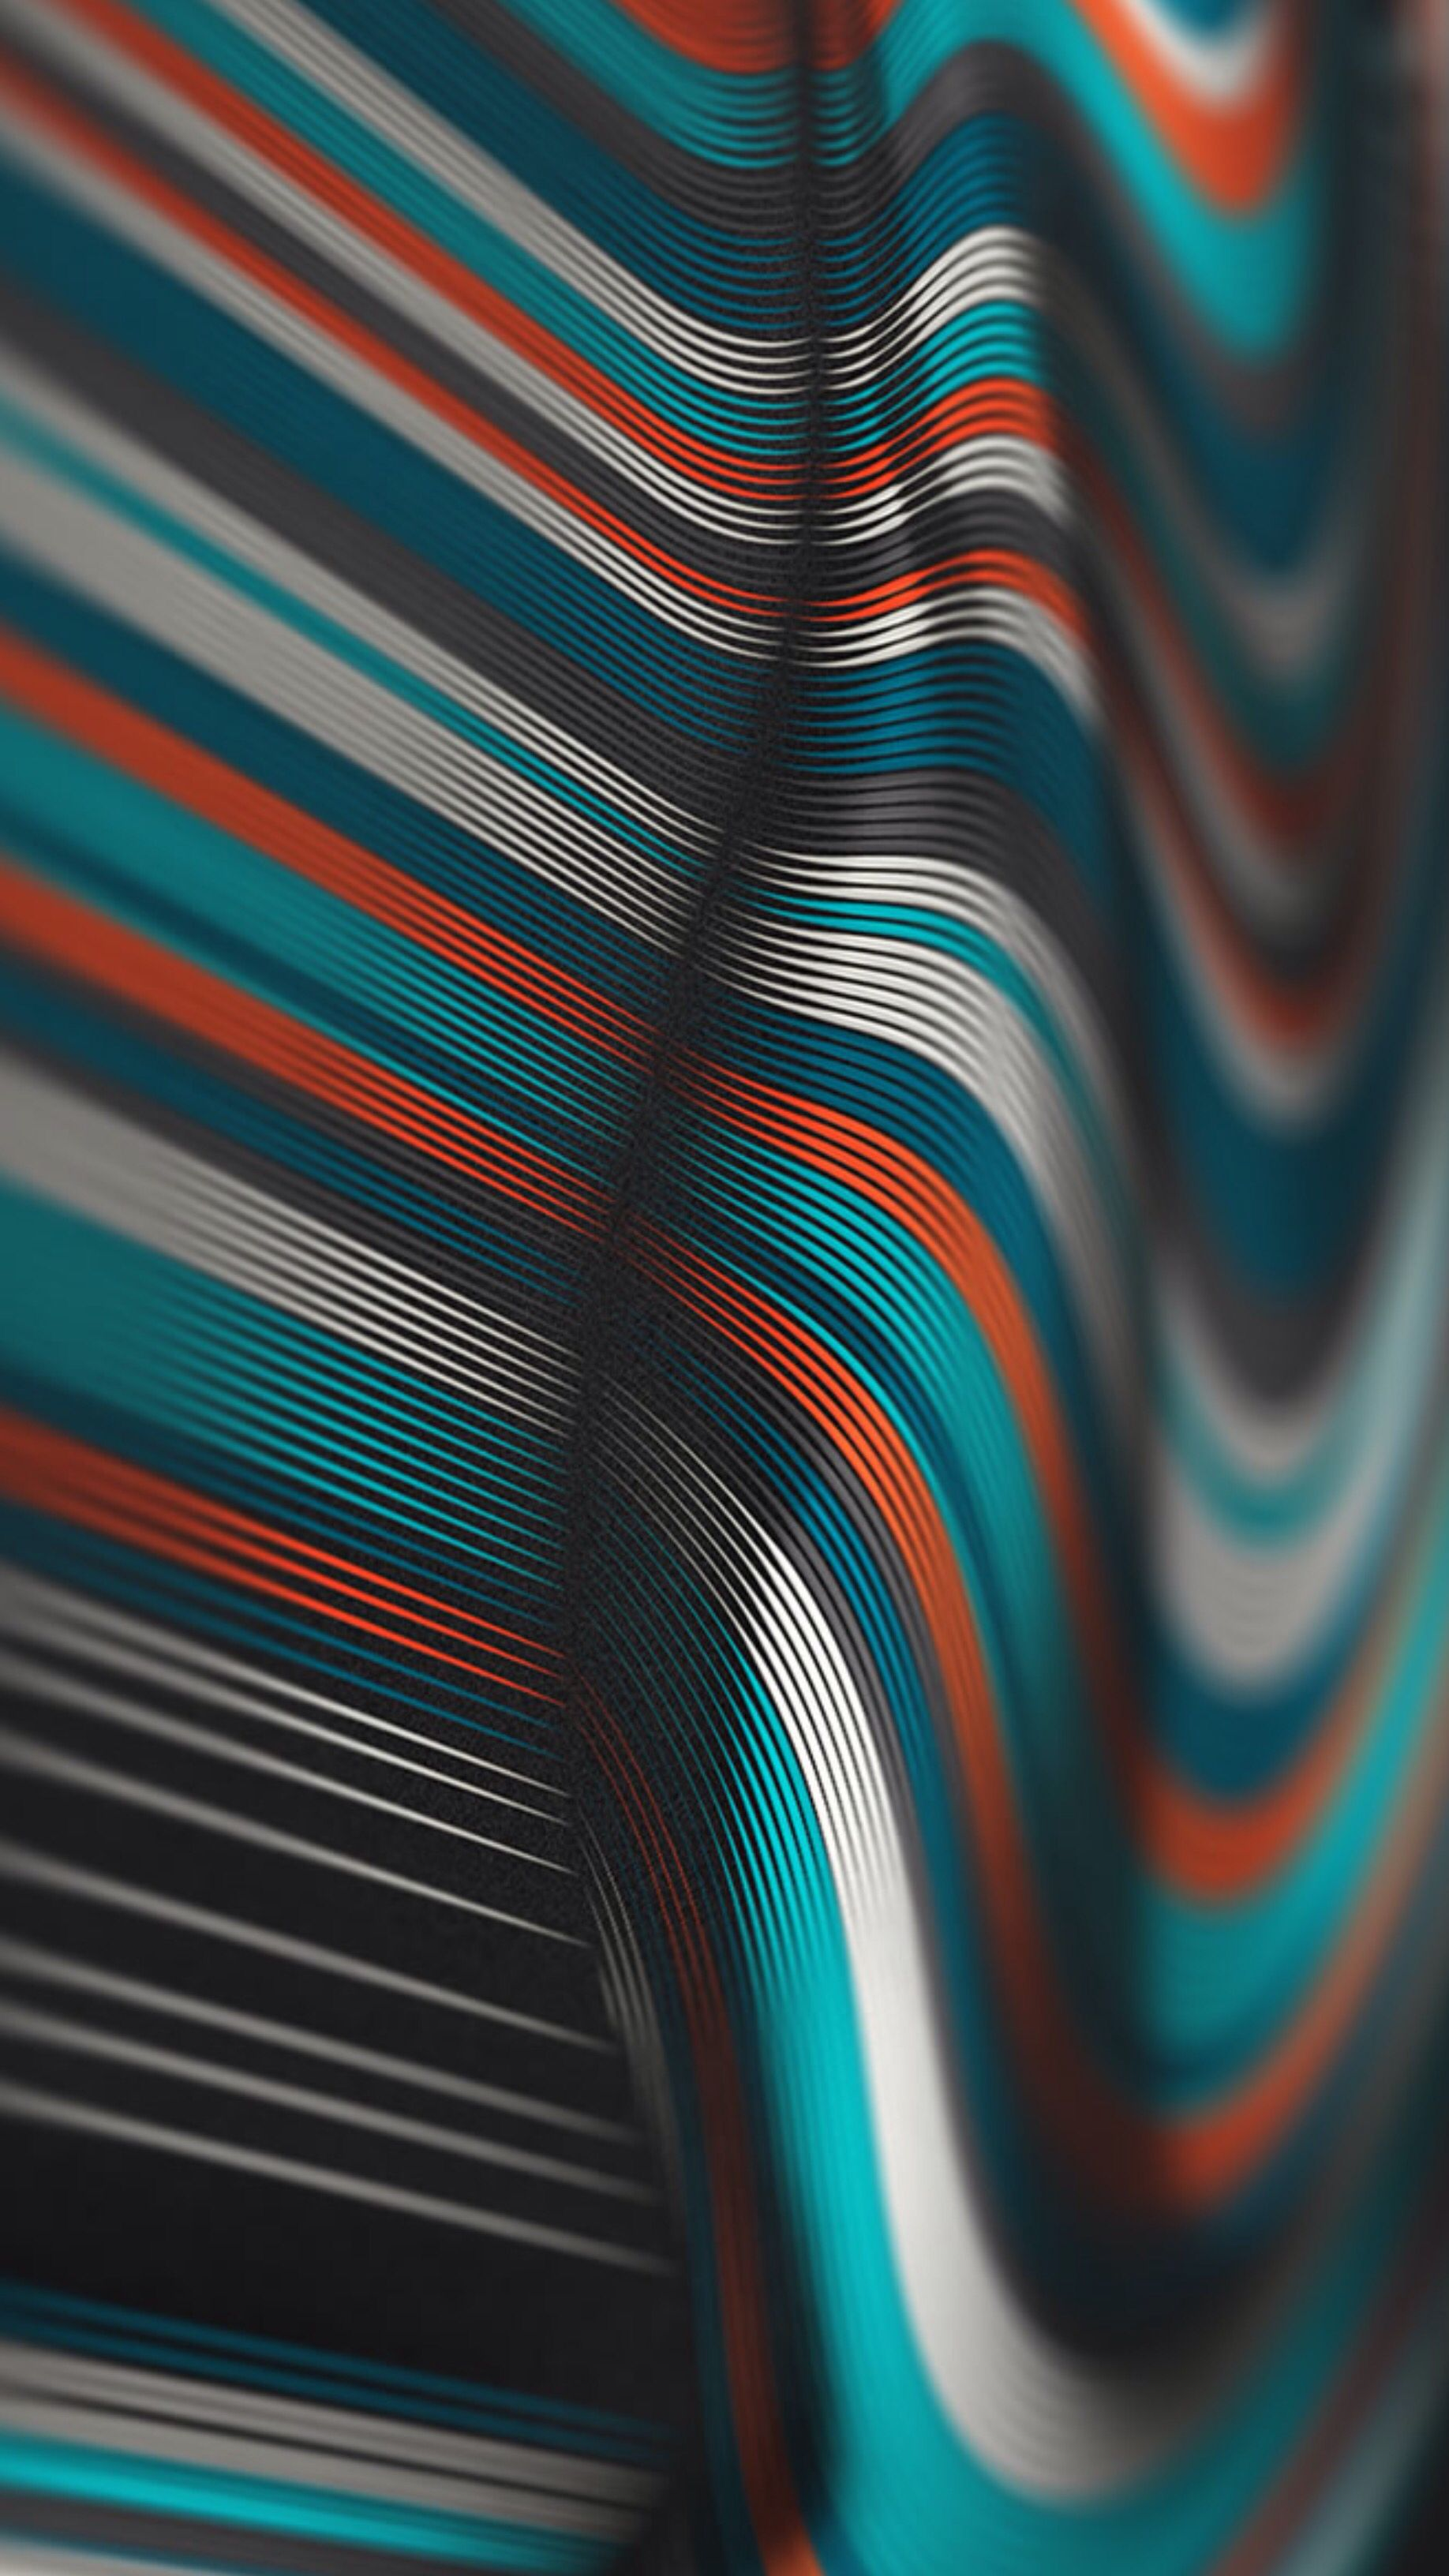 Pin By Wallpapers Phone Pad Hd On 9 16 Phone Abstract Iphone